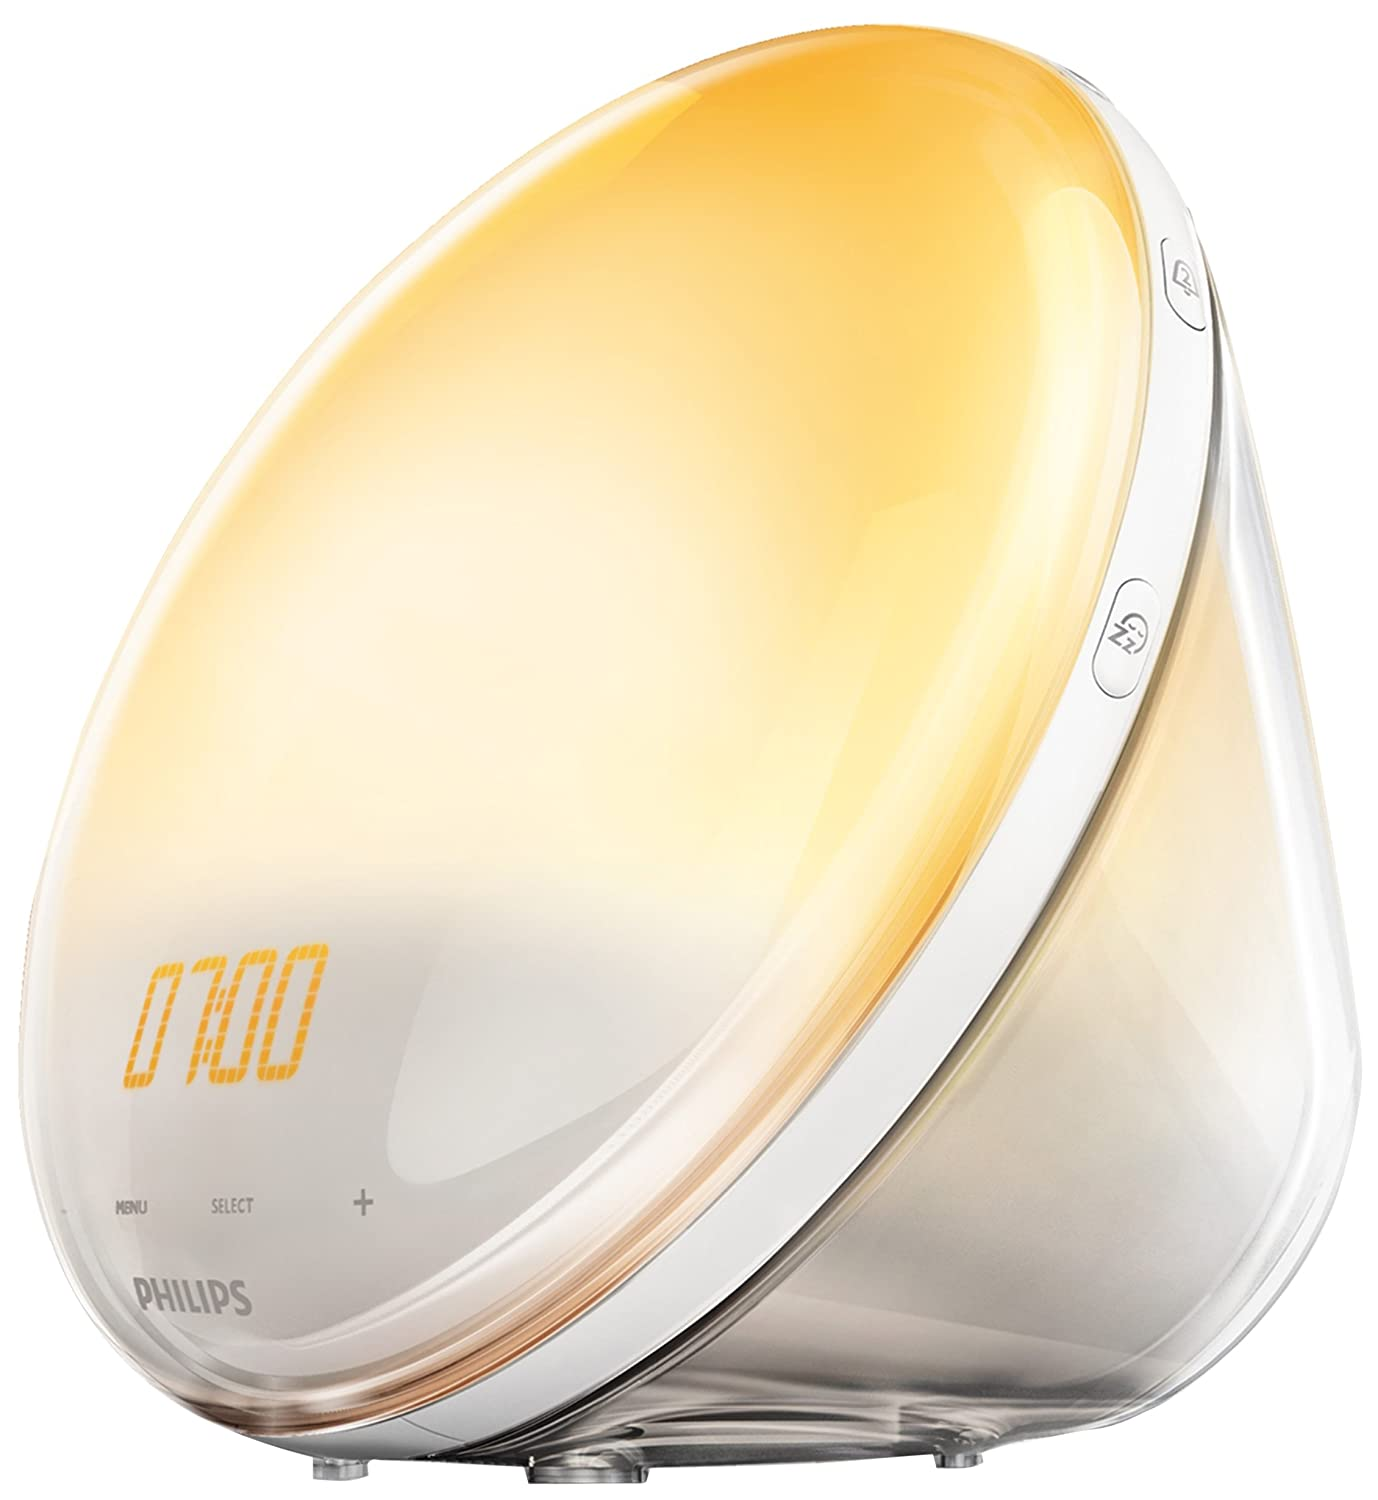 Philips HF3531/01 Wake-Up Light Bild